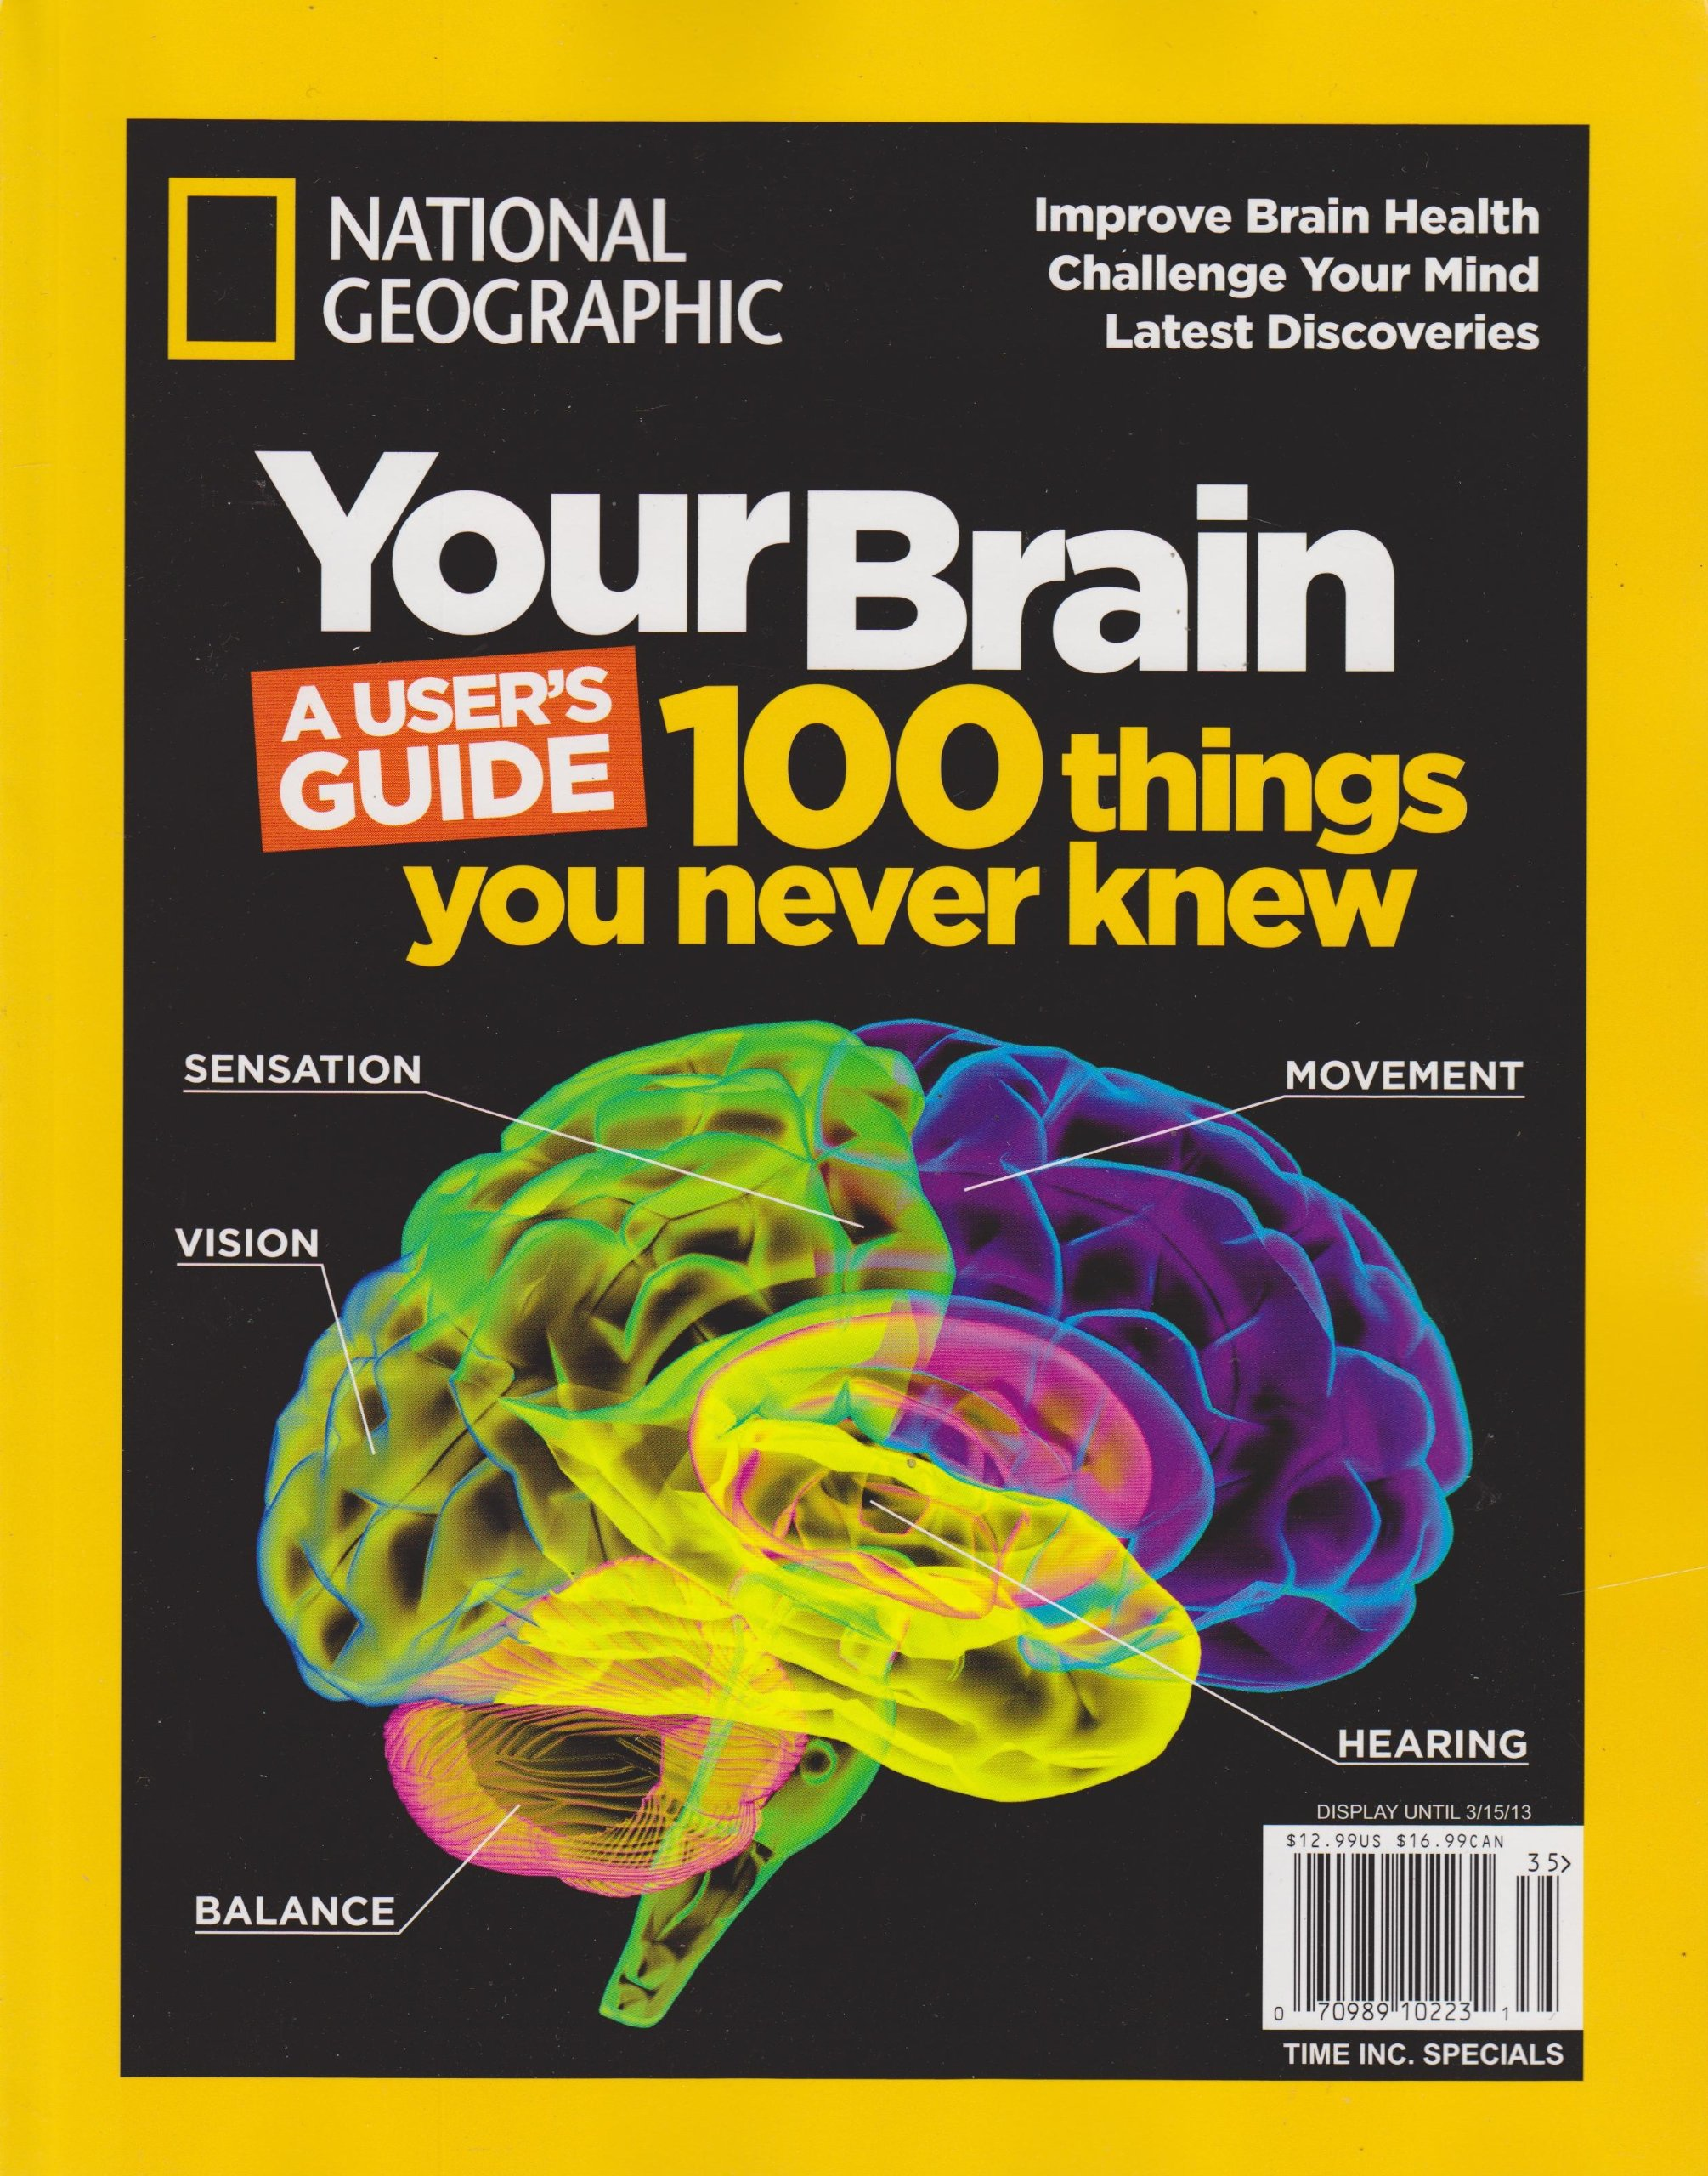 National Geographic Your Brain: A User\'s Guide (100 Things You Never ...